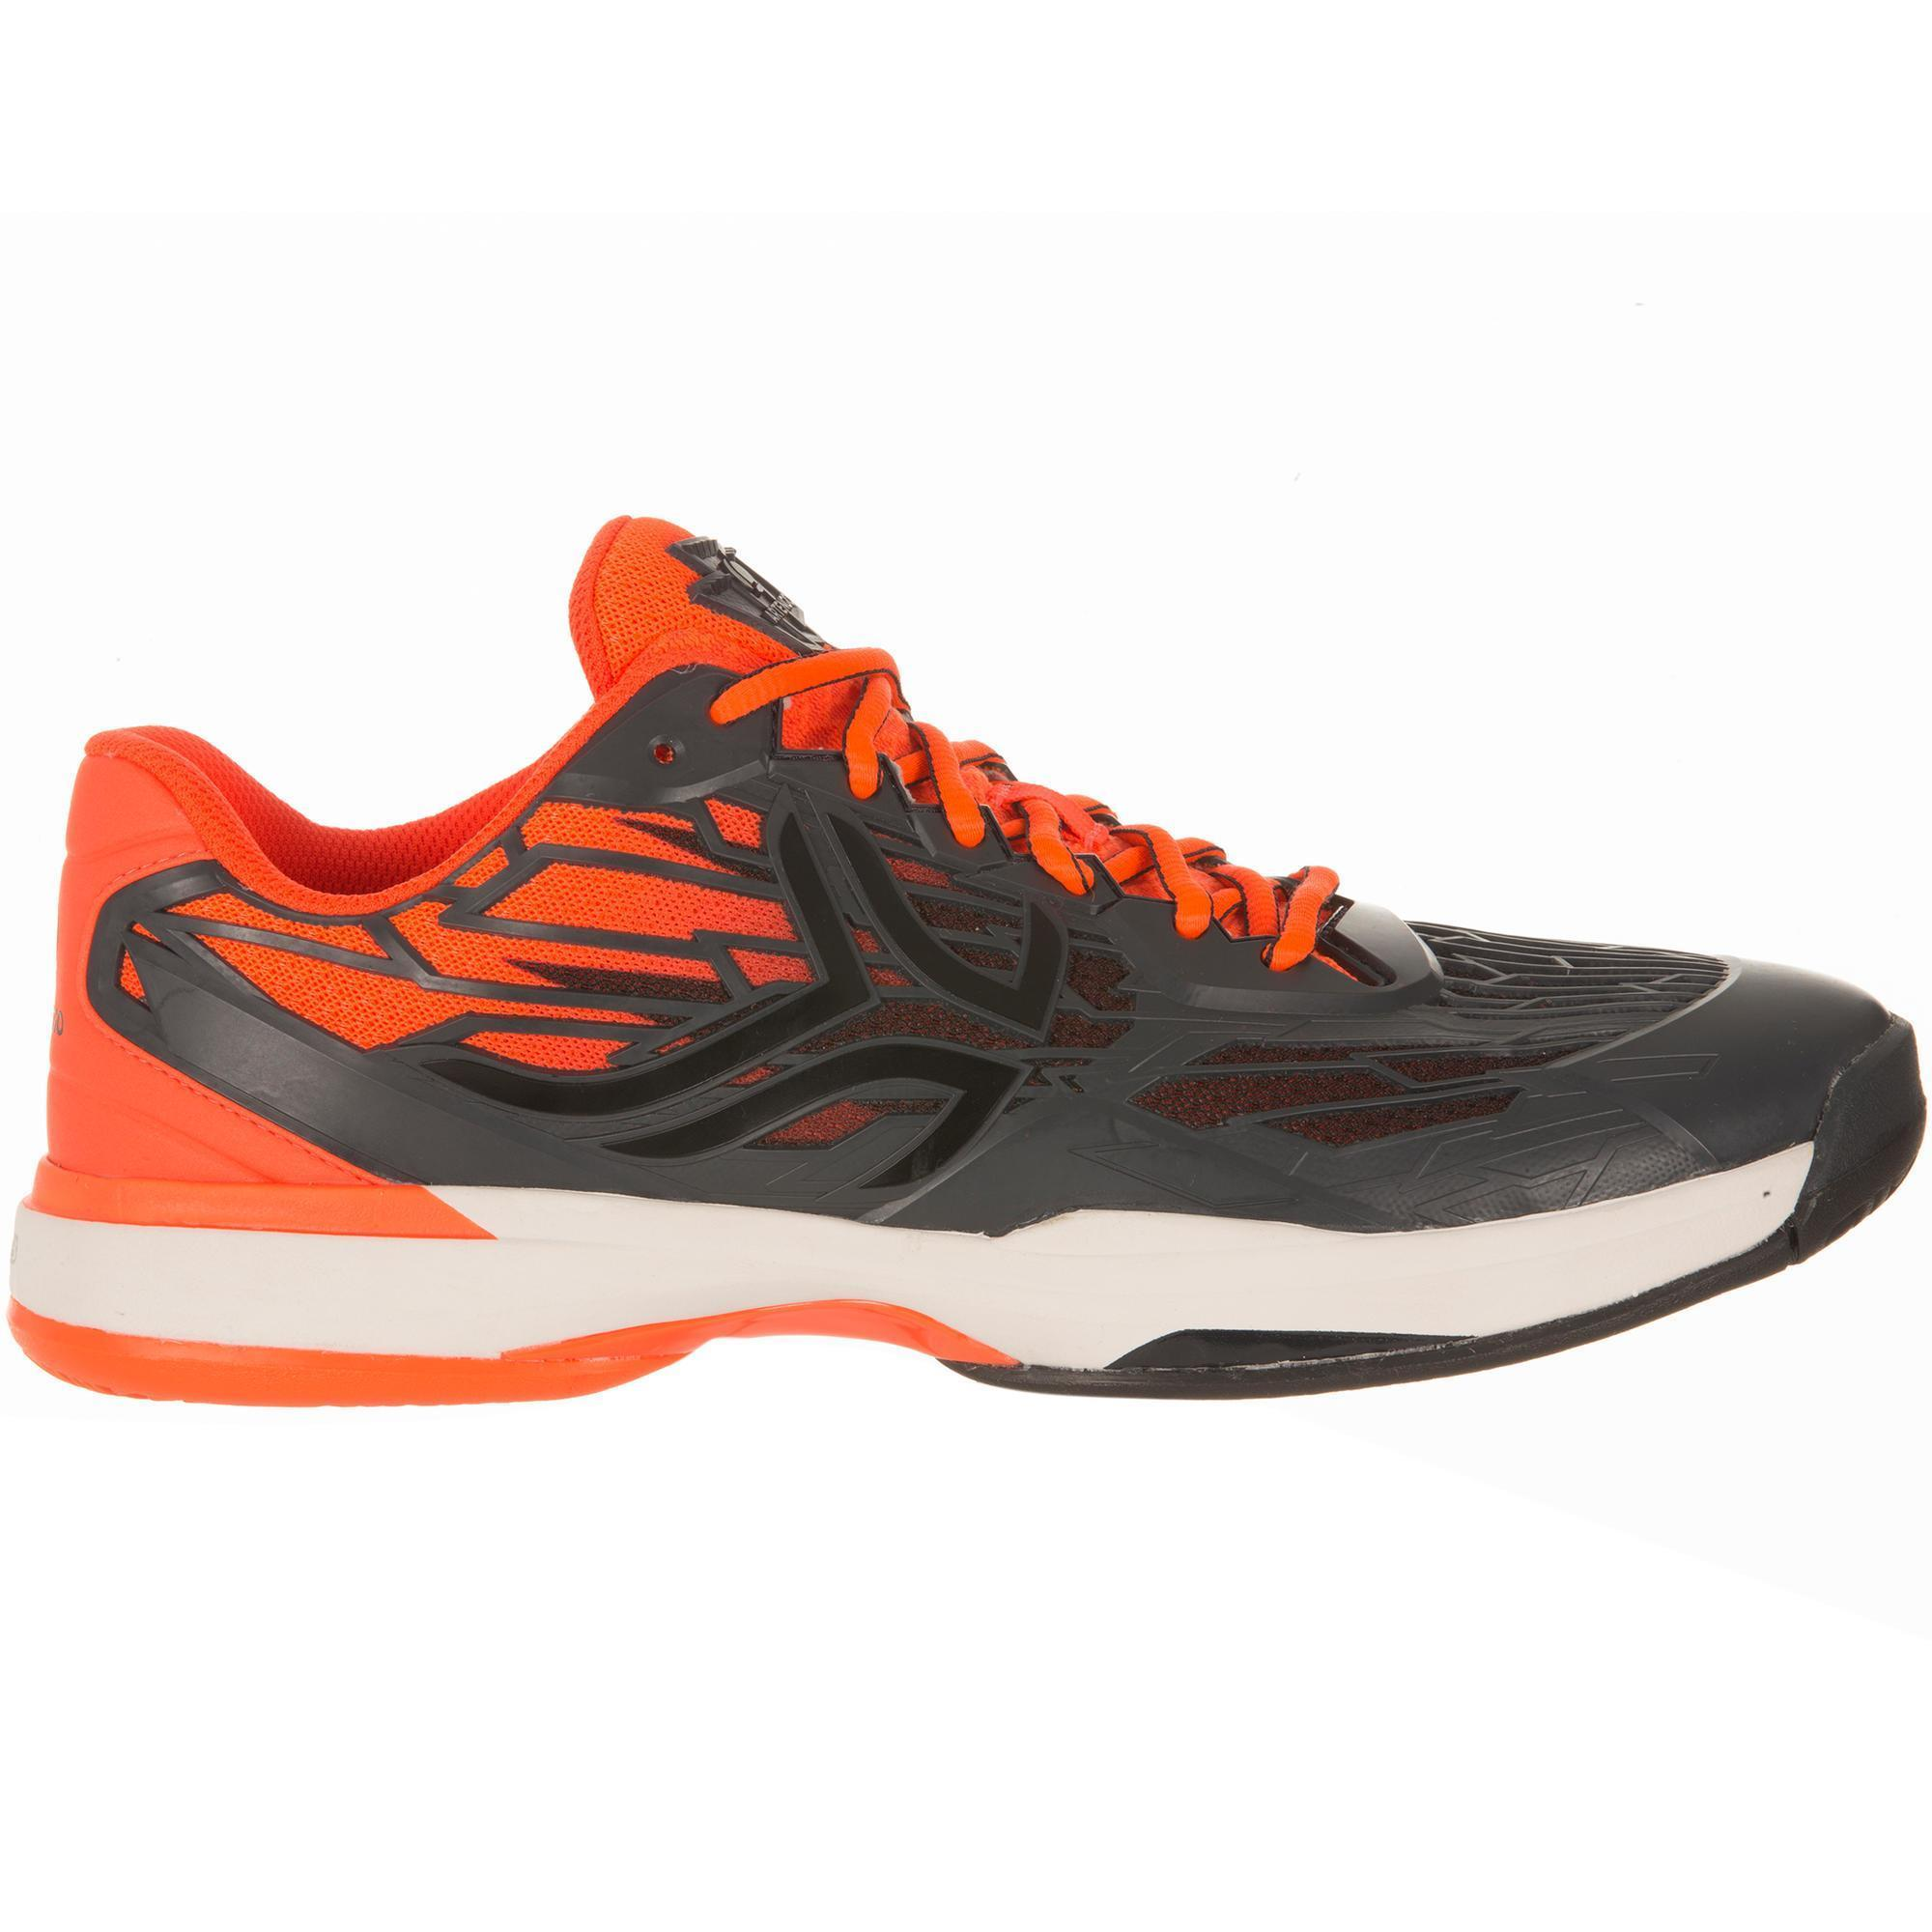 chaussures de tennis homme ts990 black orange artengo. Black Bedroom Furniture Sets. Home Design Ideas